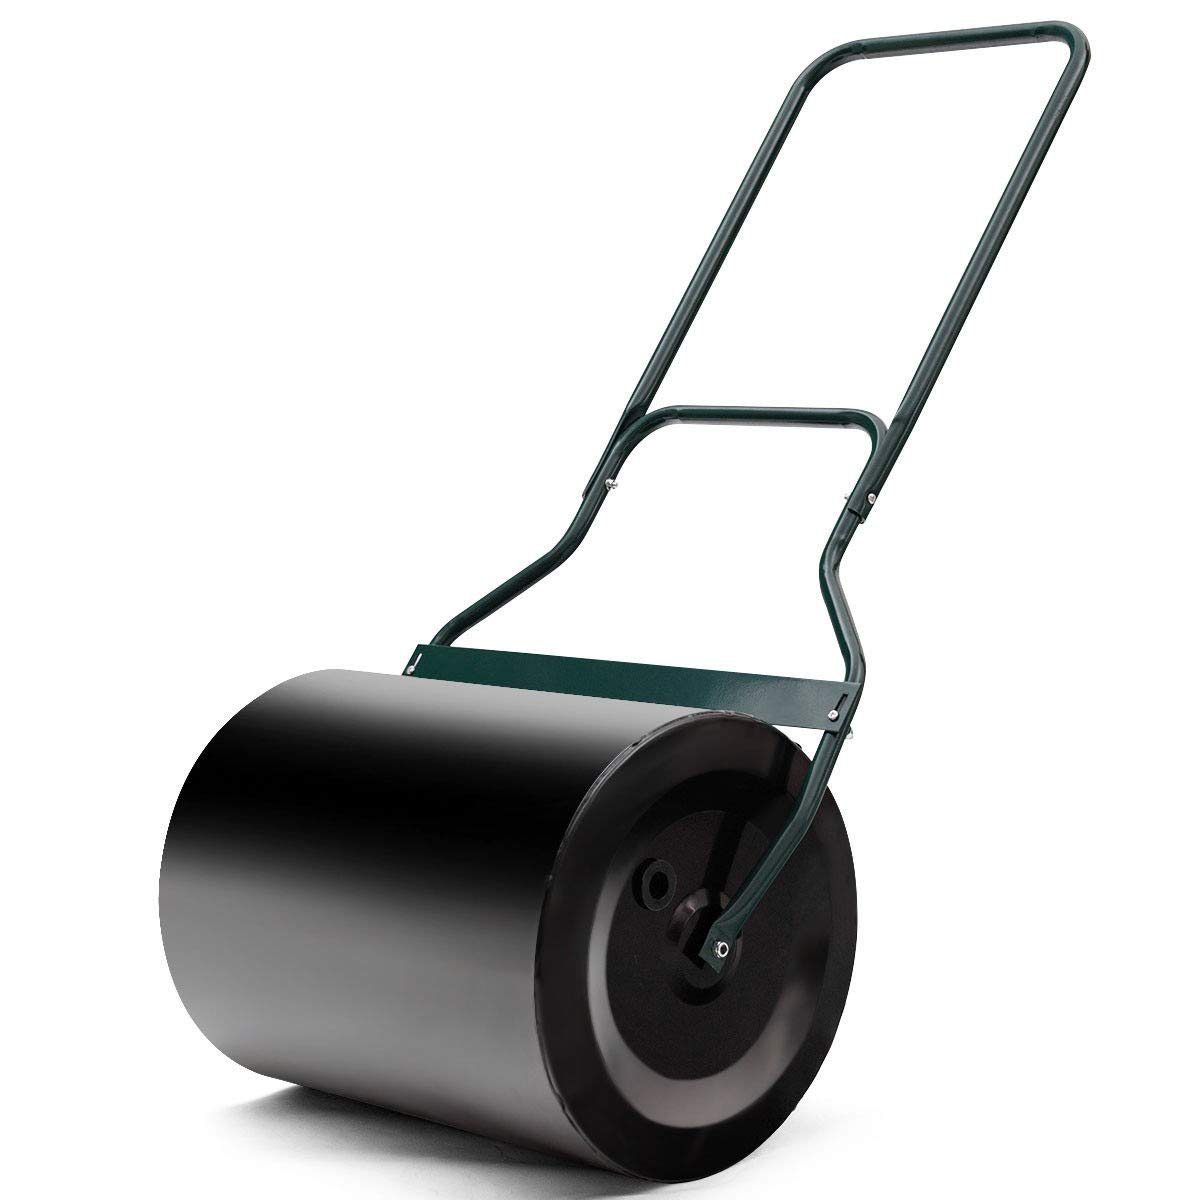 King77777 Heavy Duty Poly Push Tow Lawn Roller Poly Practical Functional Useful Compact Size Portable Beautiful and Fashionable Color by King77777